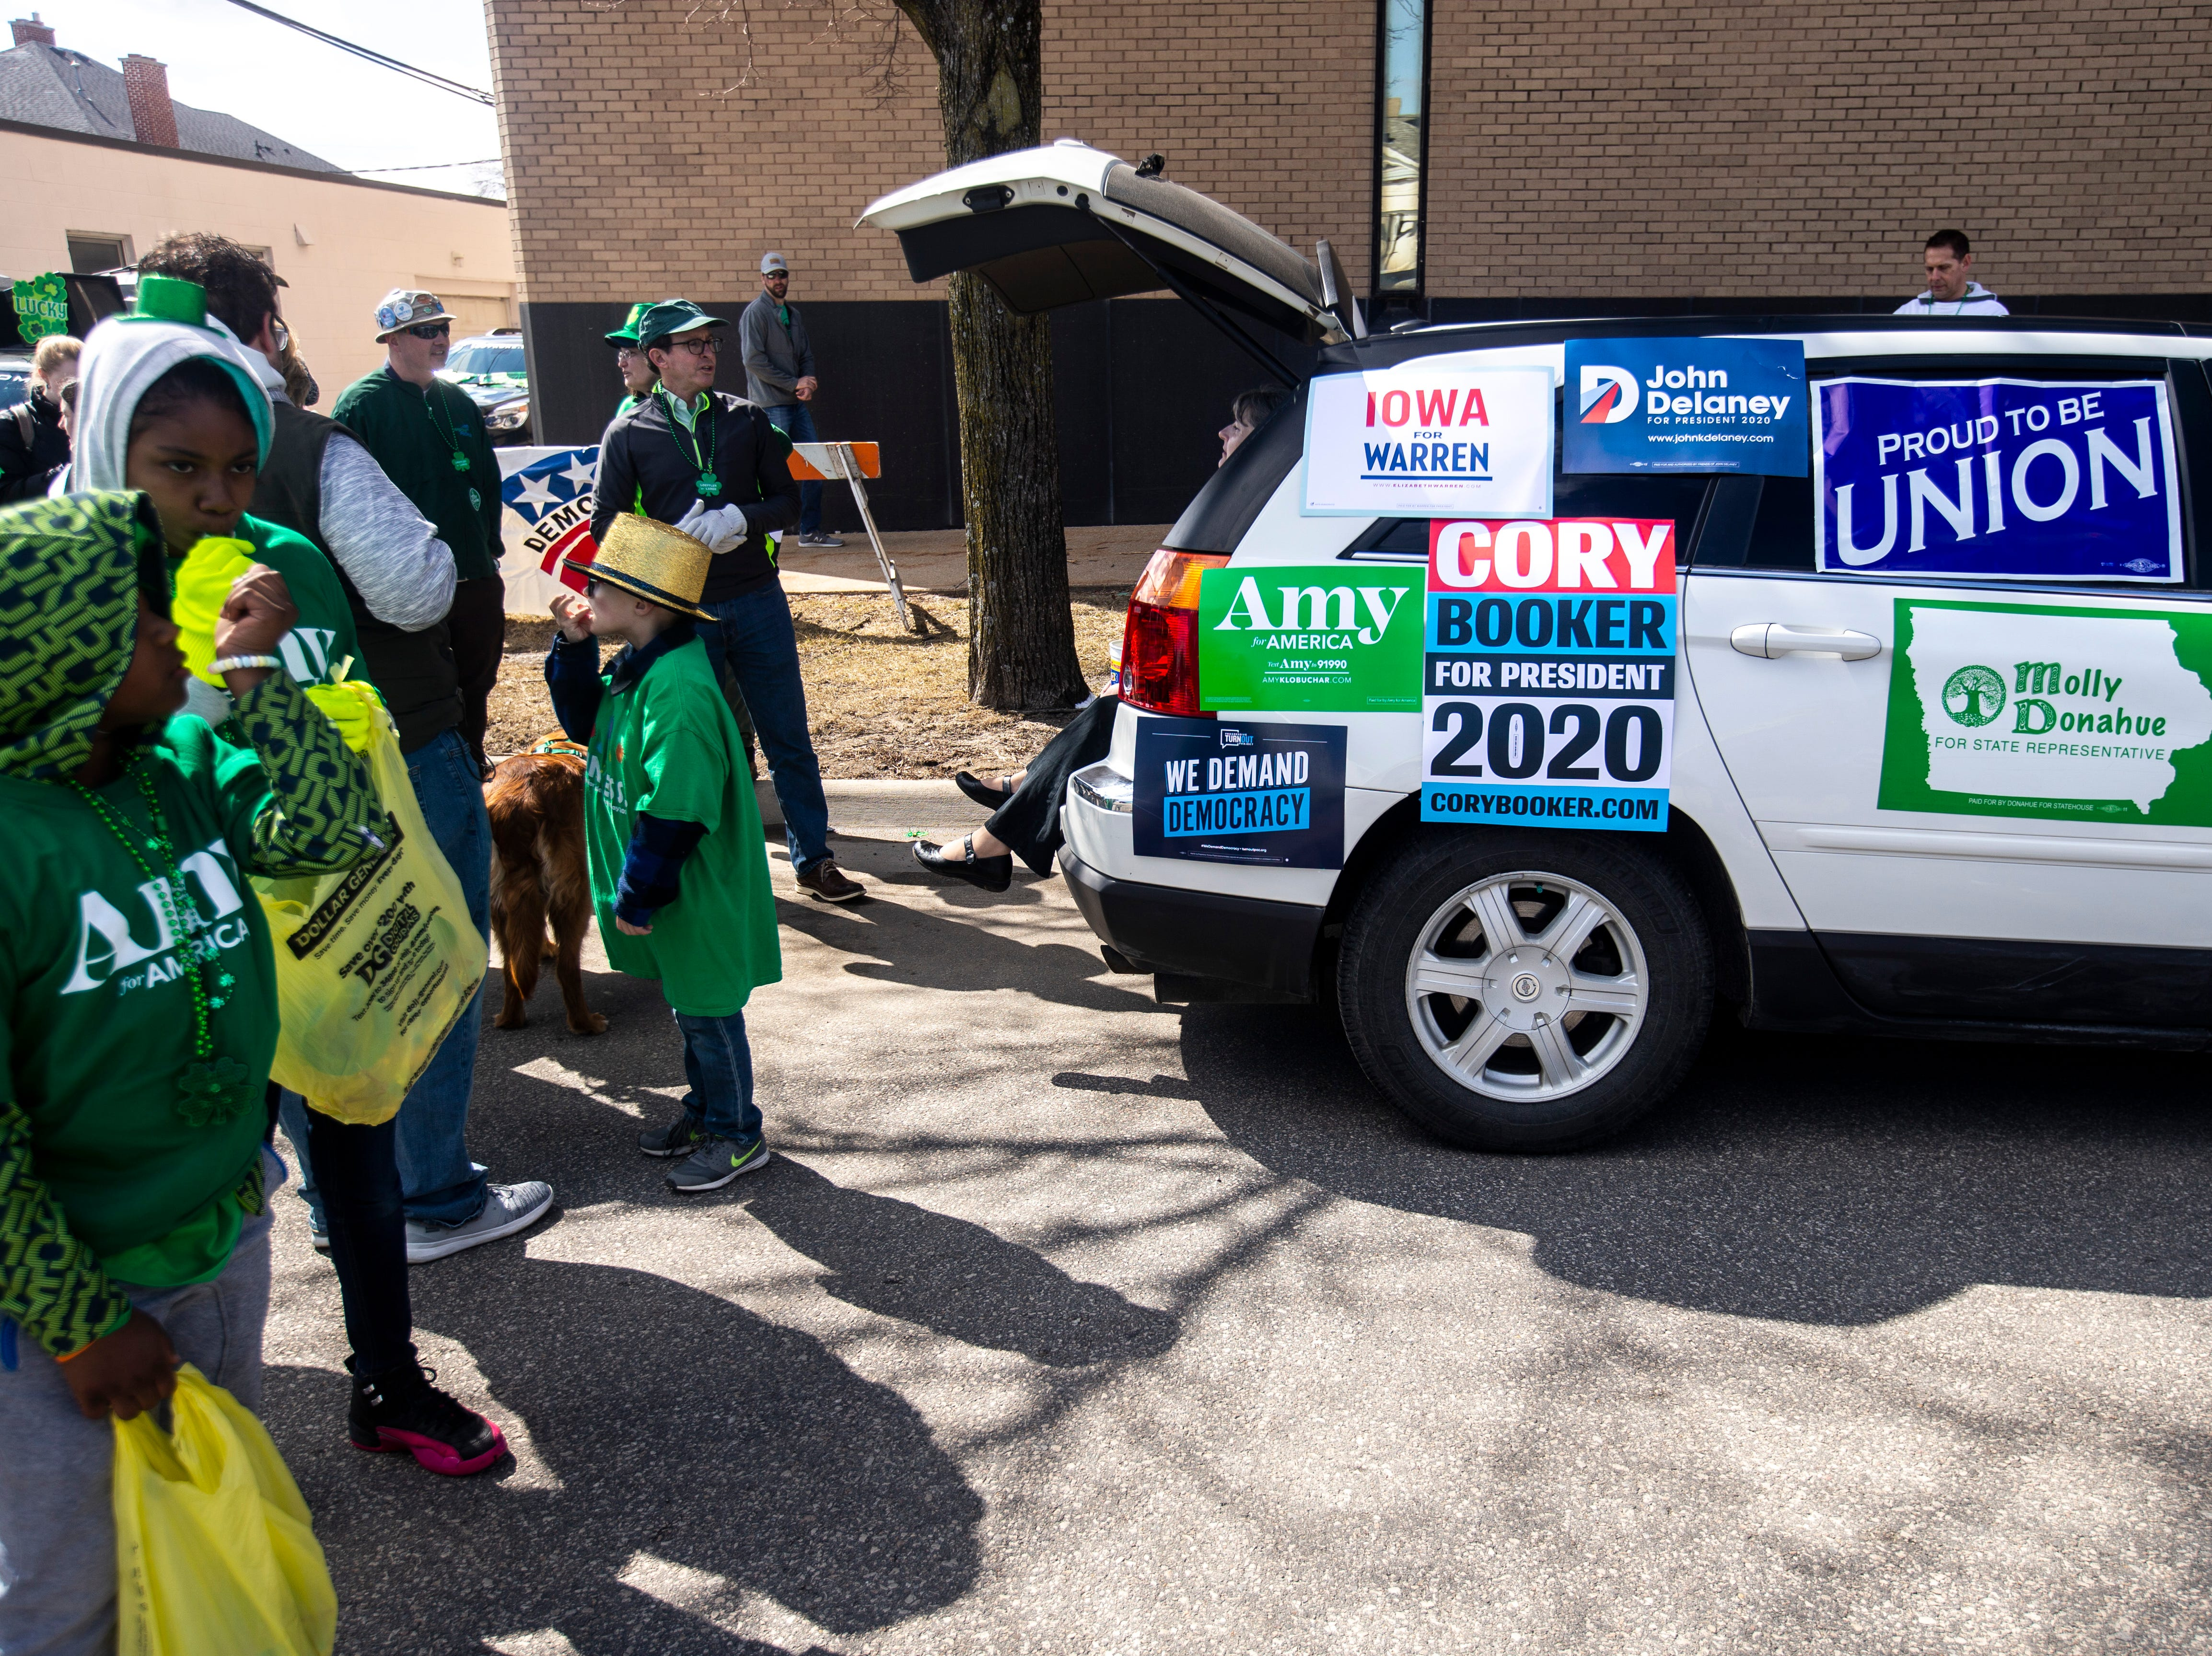 A vehicle in the Linn County Democrats float is covered in signs for Elizabeth Warren, Cory Booker, Amy Klobuchar, John Delaney, Bernie Sanders, and local candidates before the Saint Patrick's Day Parade Society (SaPaDaPaSo) parade on Sunday, March 17, 2019, in downtown Cedar Rapids, Iowa.